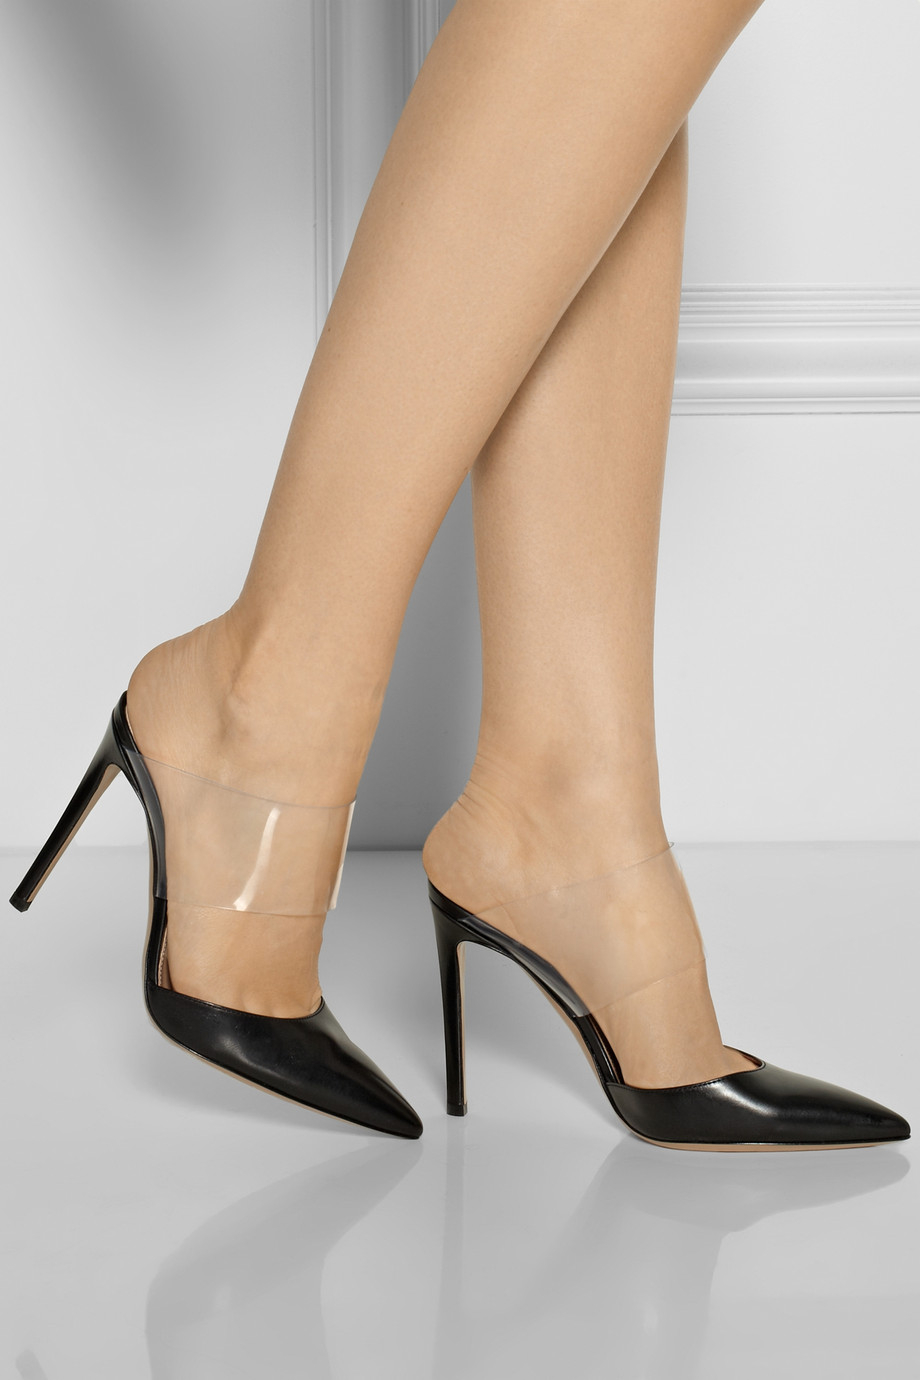 Lyst Gianvito Rossi Leather And Pvc Pumps In Black